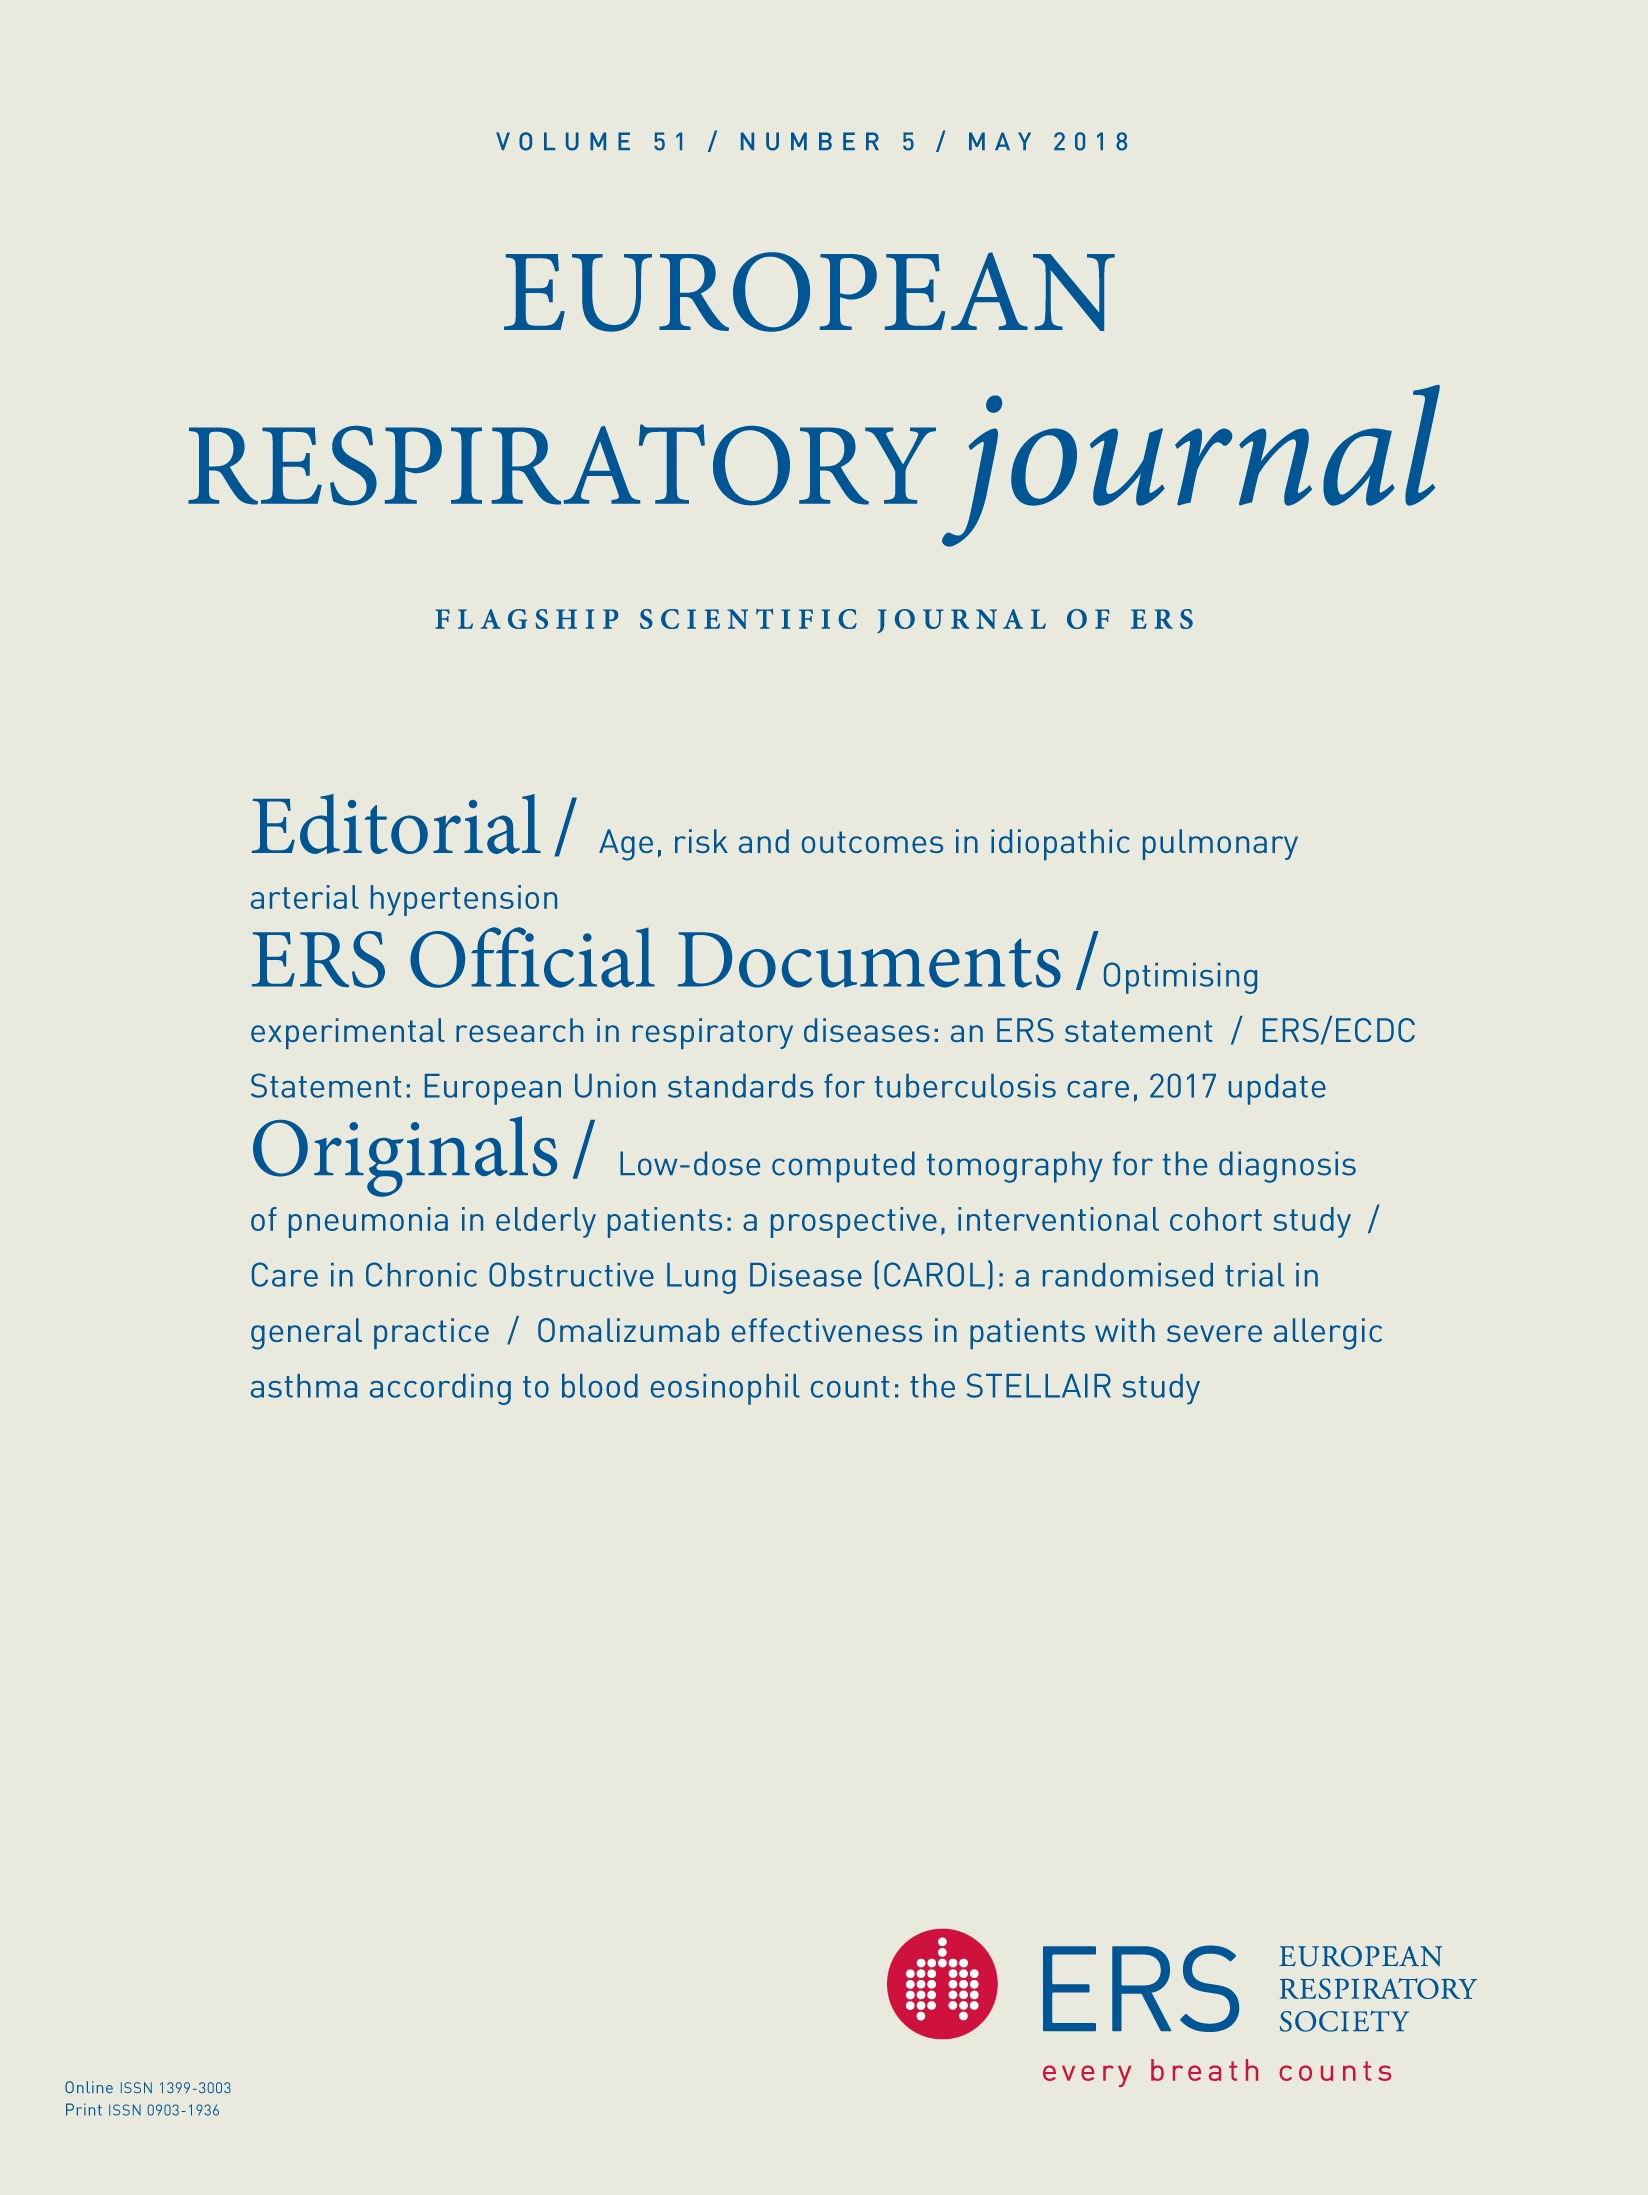 Electronic cigarette use in youths: a position statement of the